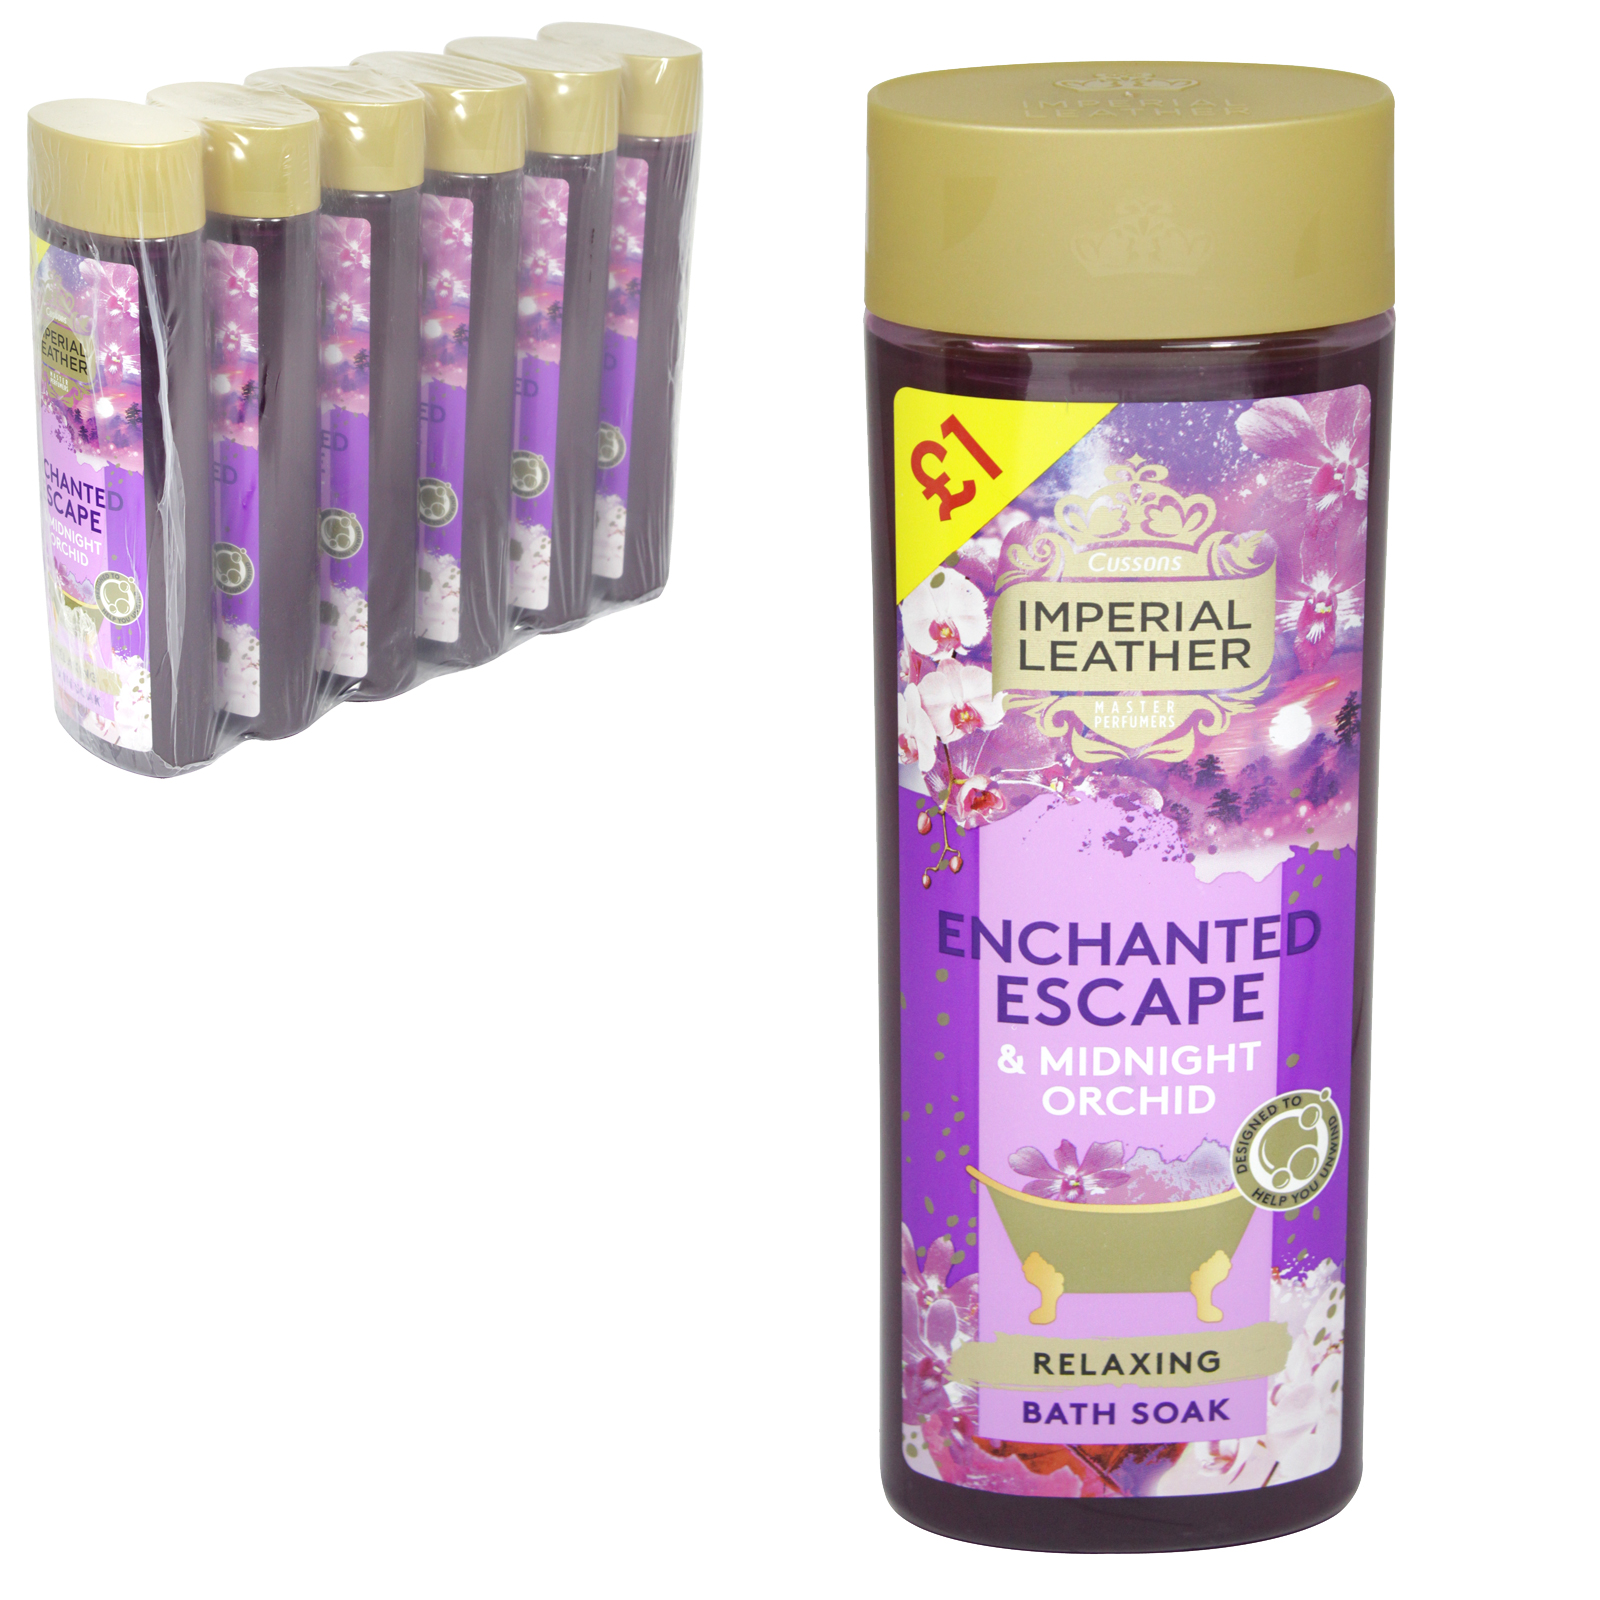 IMP LEATHER CREME BATH 500ML RELAXING ORCHID & YLANG YLANG £1 X6